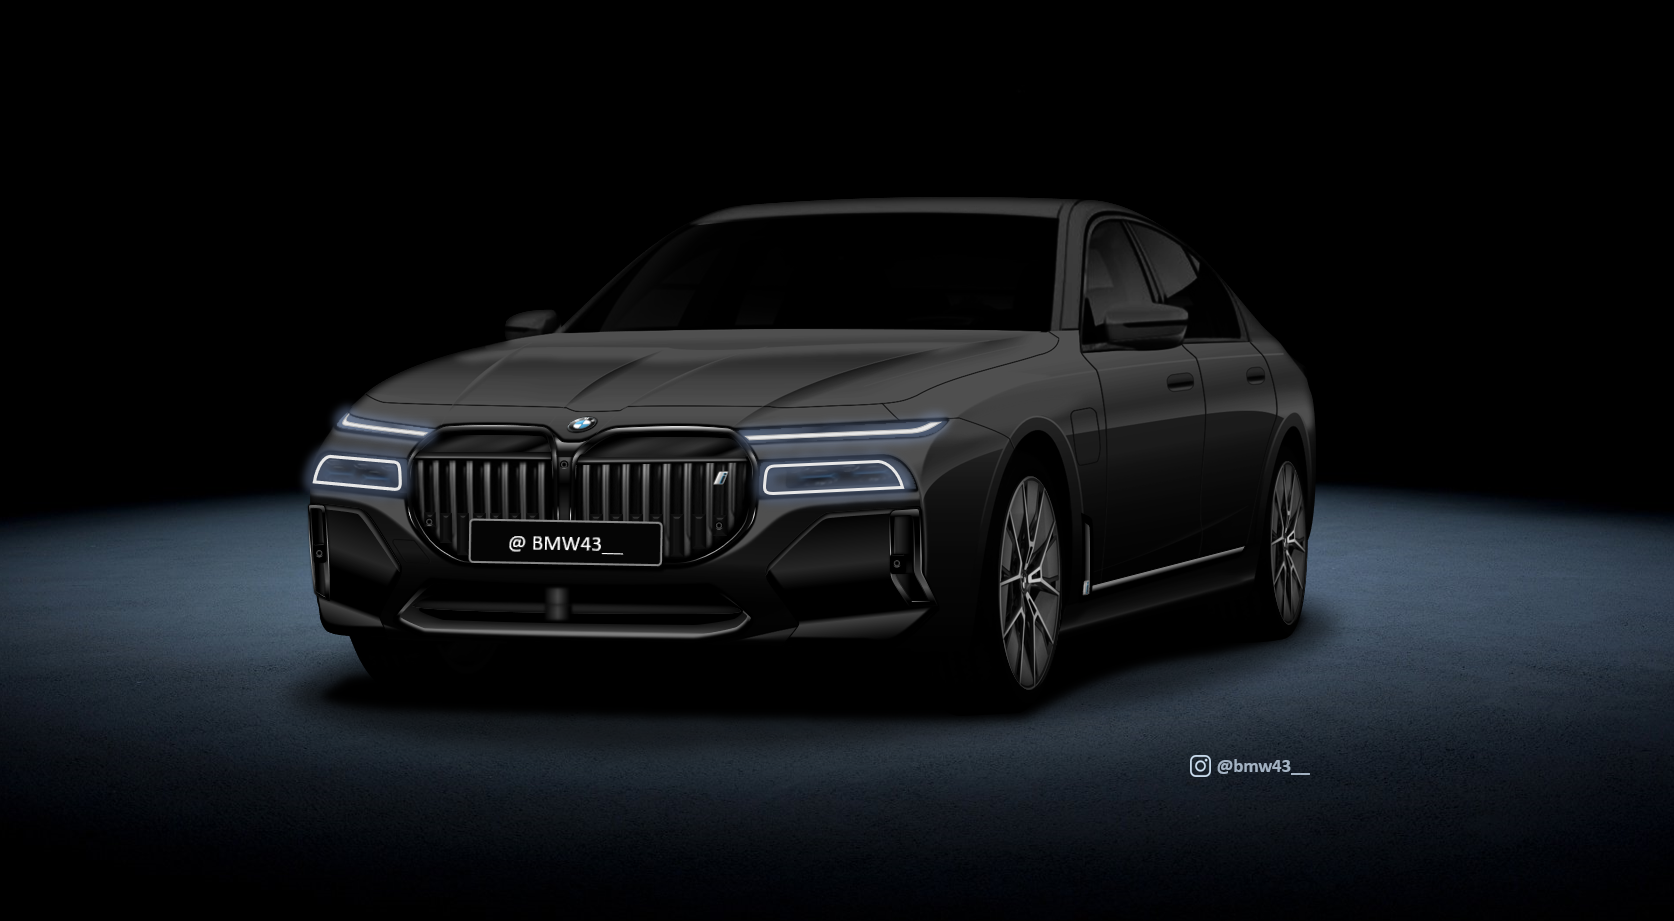 2022 bmw 7 series rendering